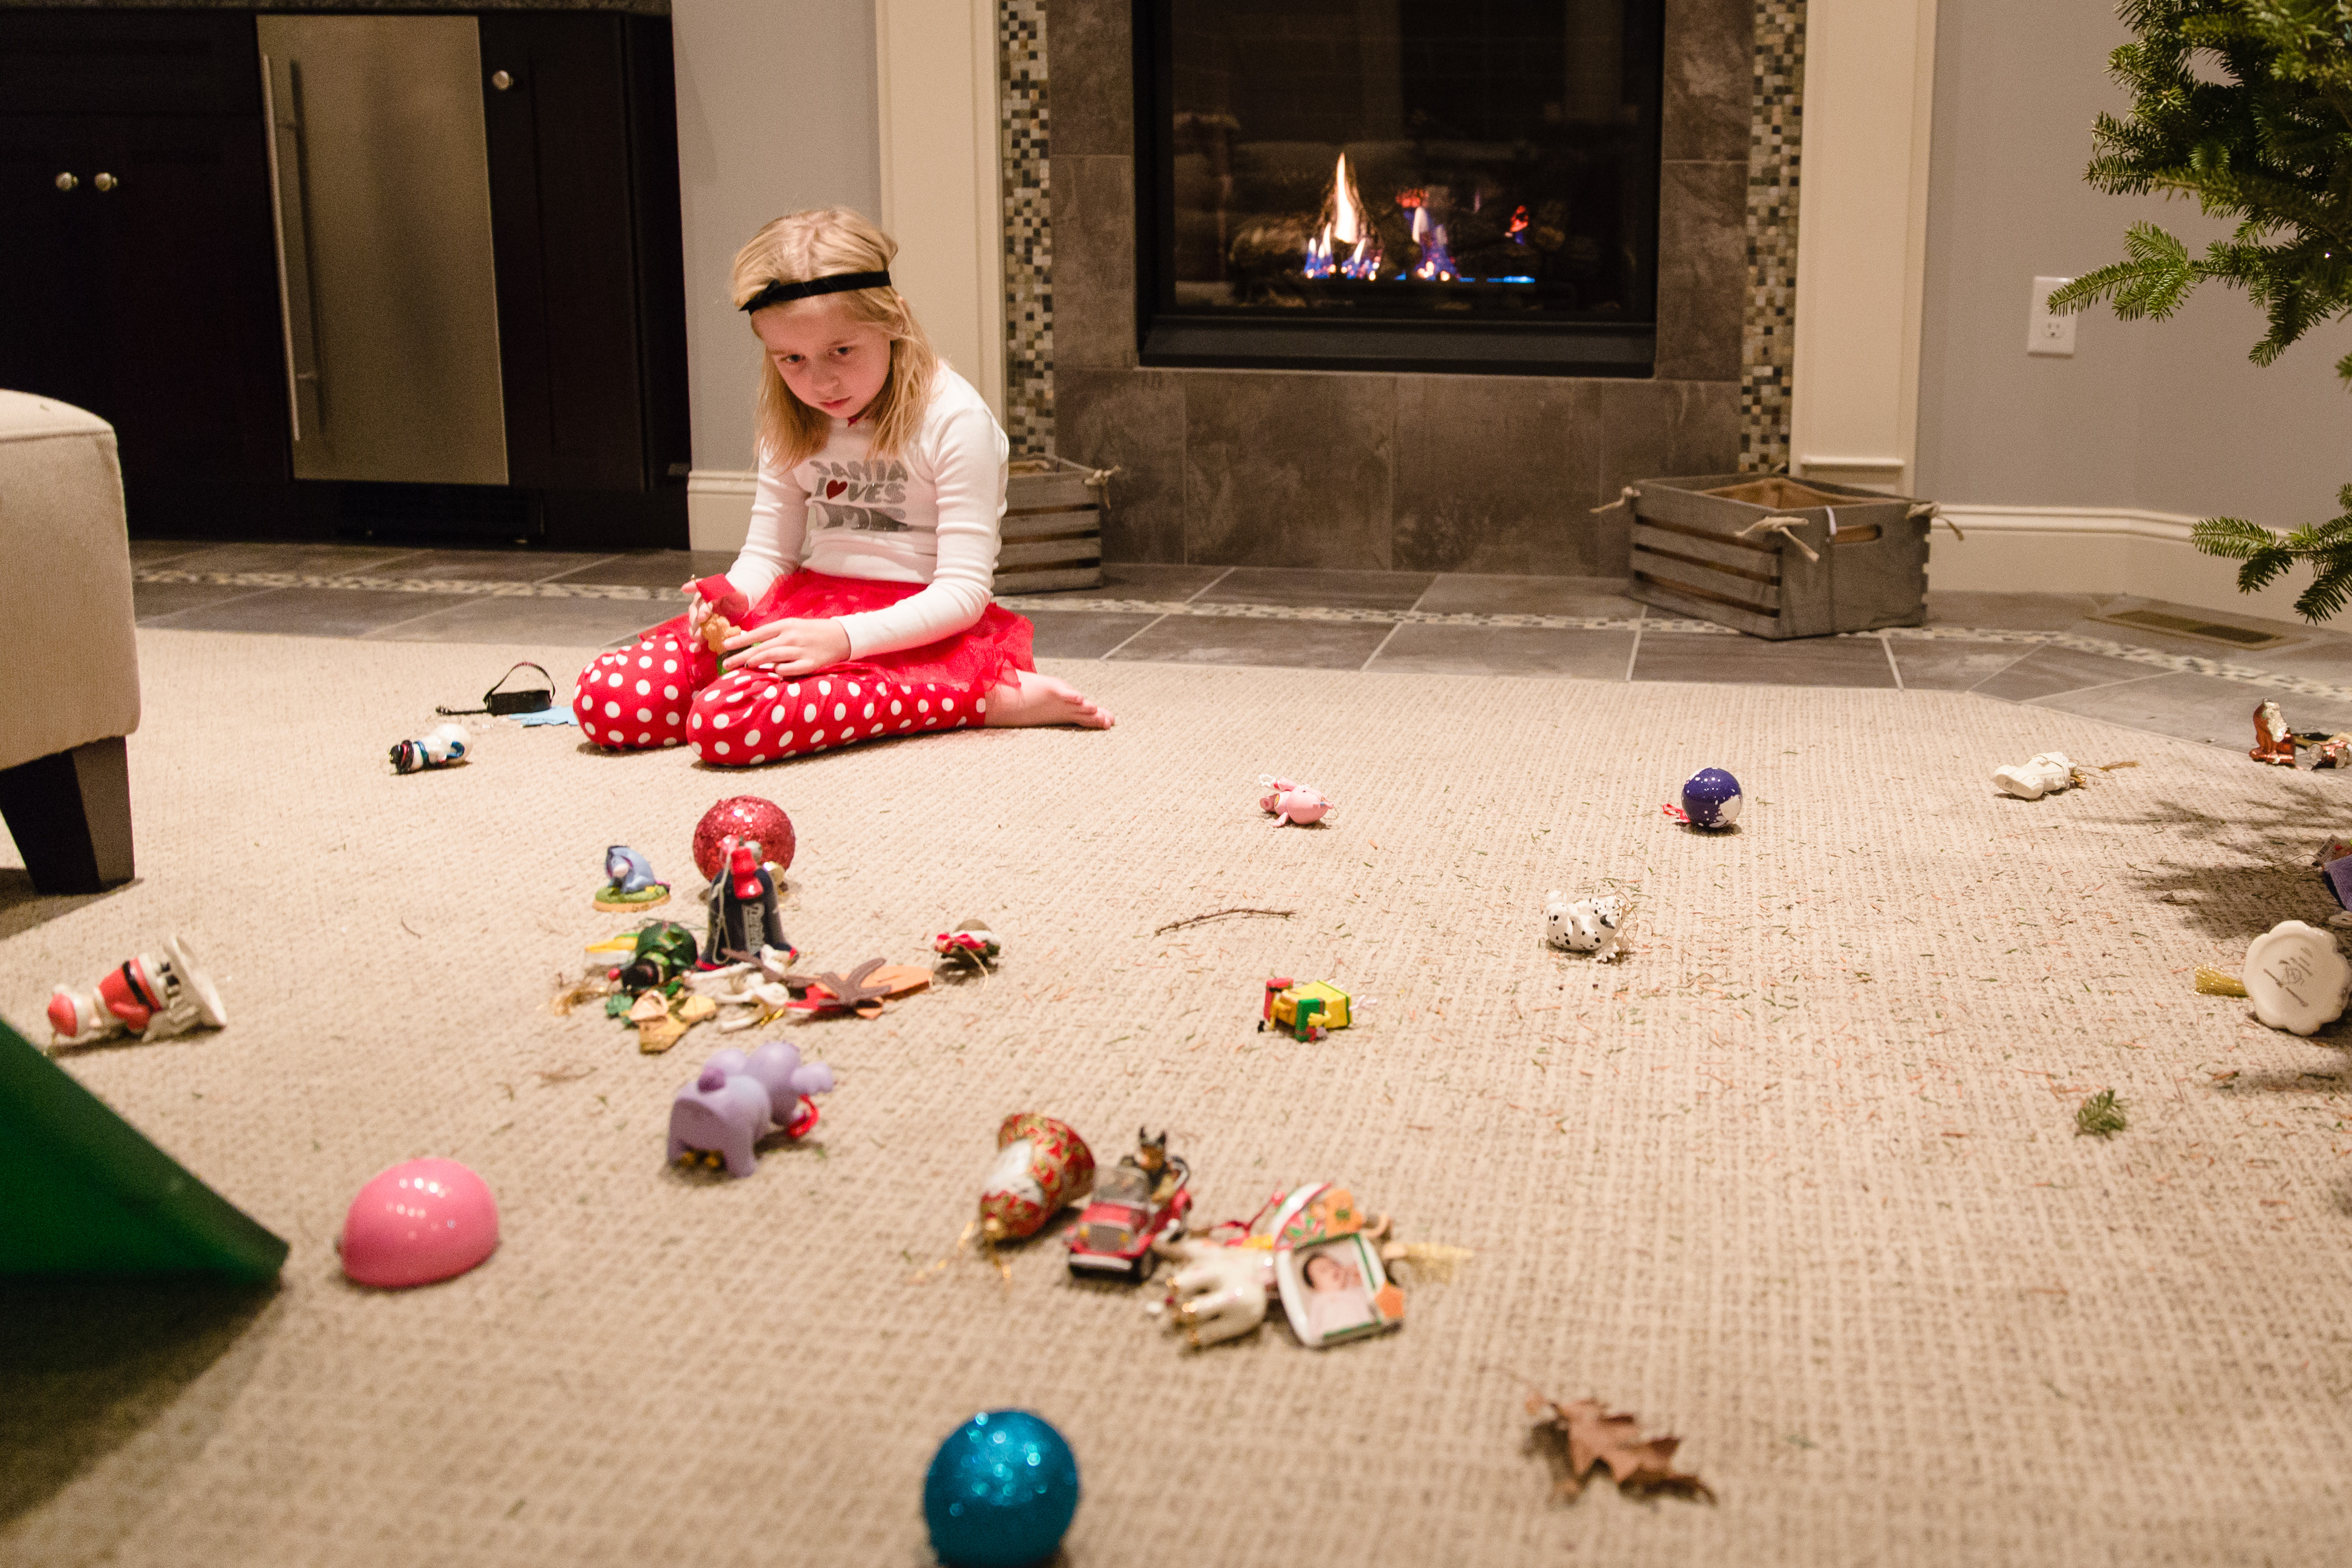 little girl in red and white polka dot tights surrounded by broken ornaments